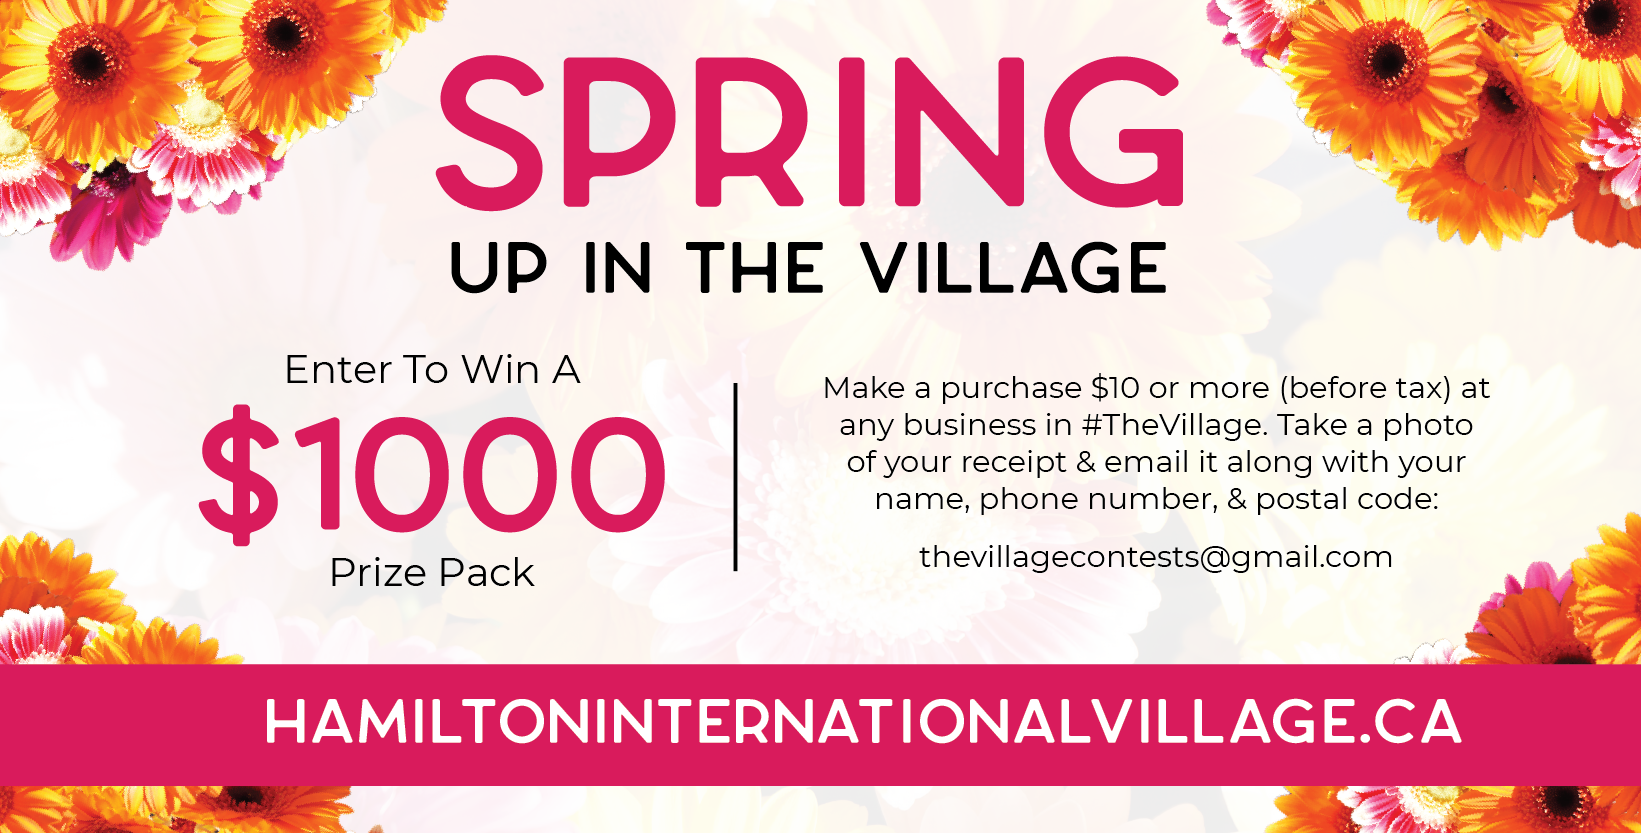 Artwork for Spring Up in the Village contest